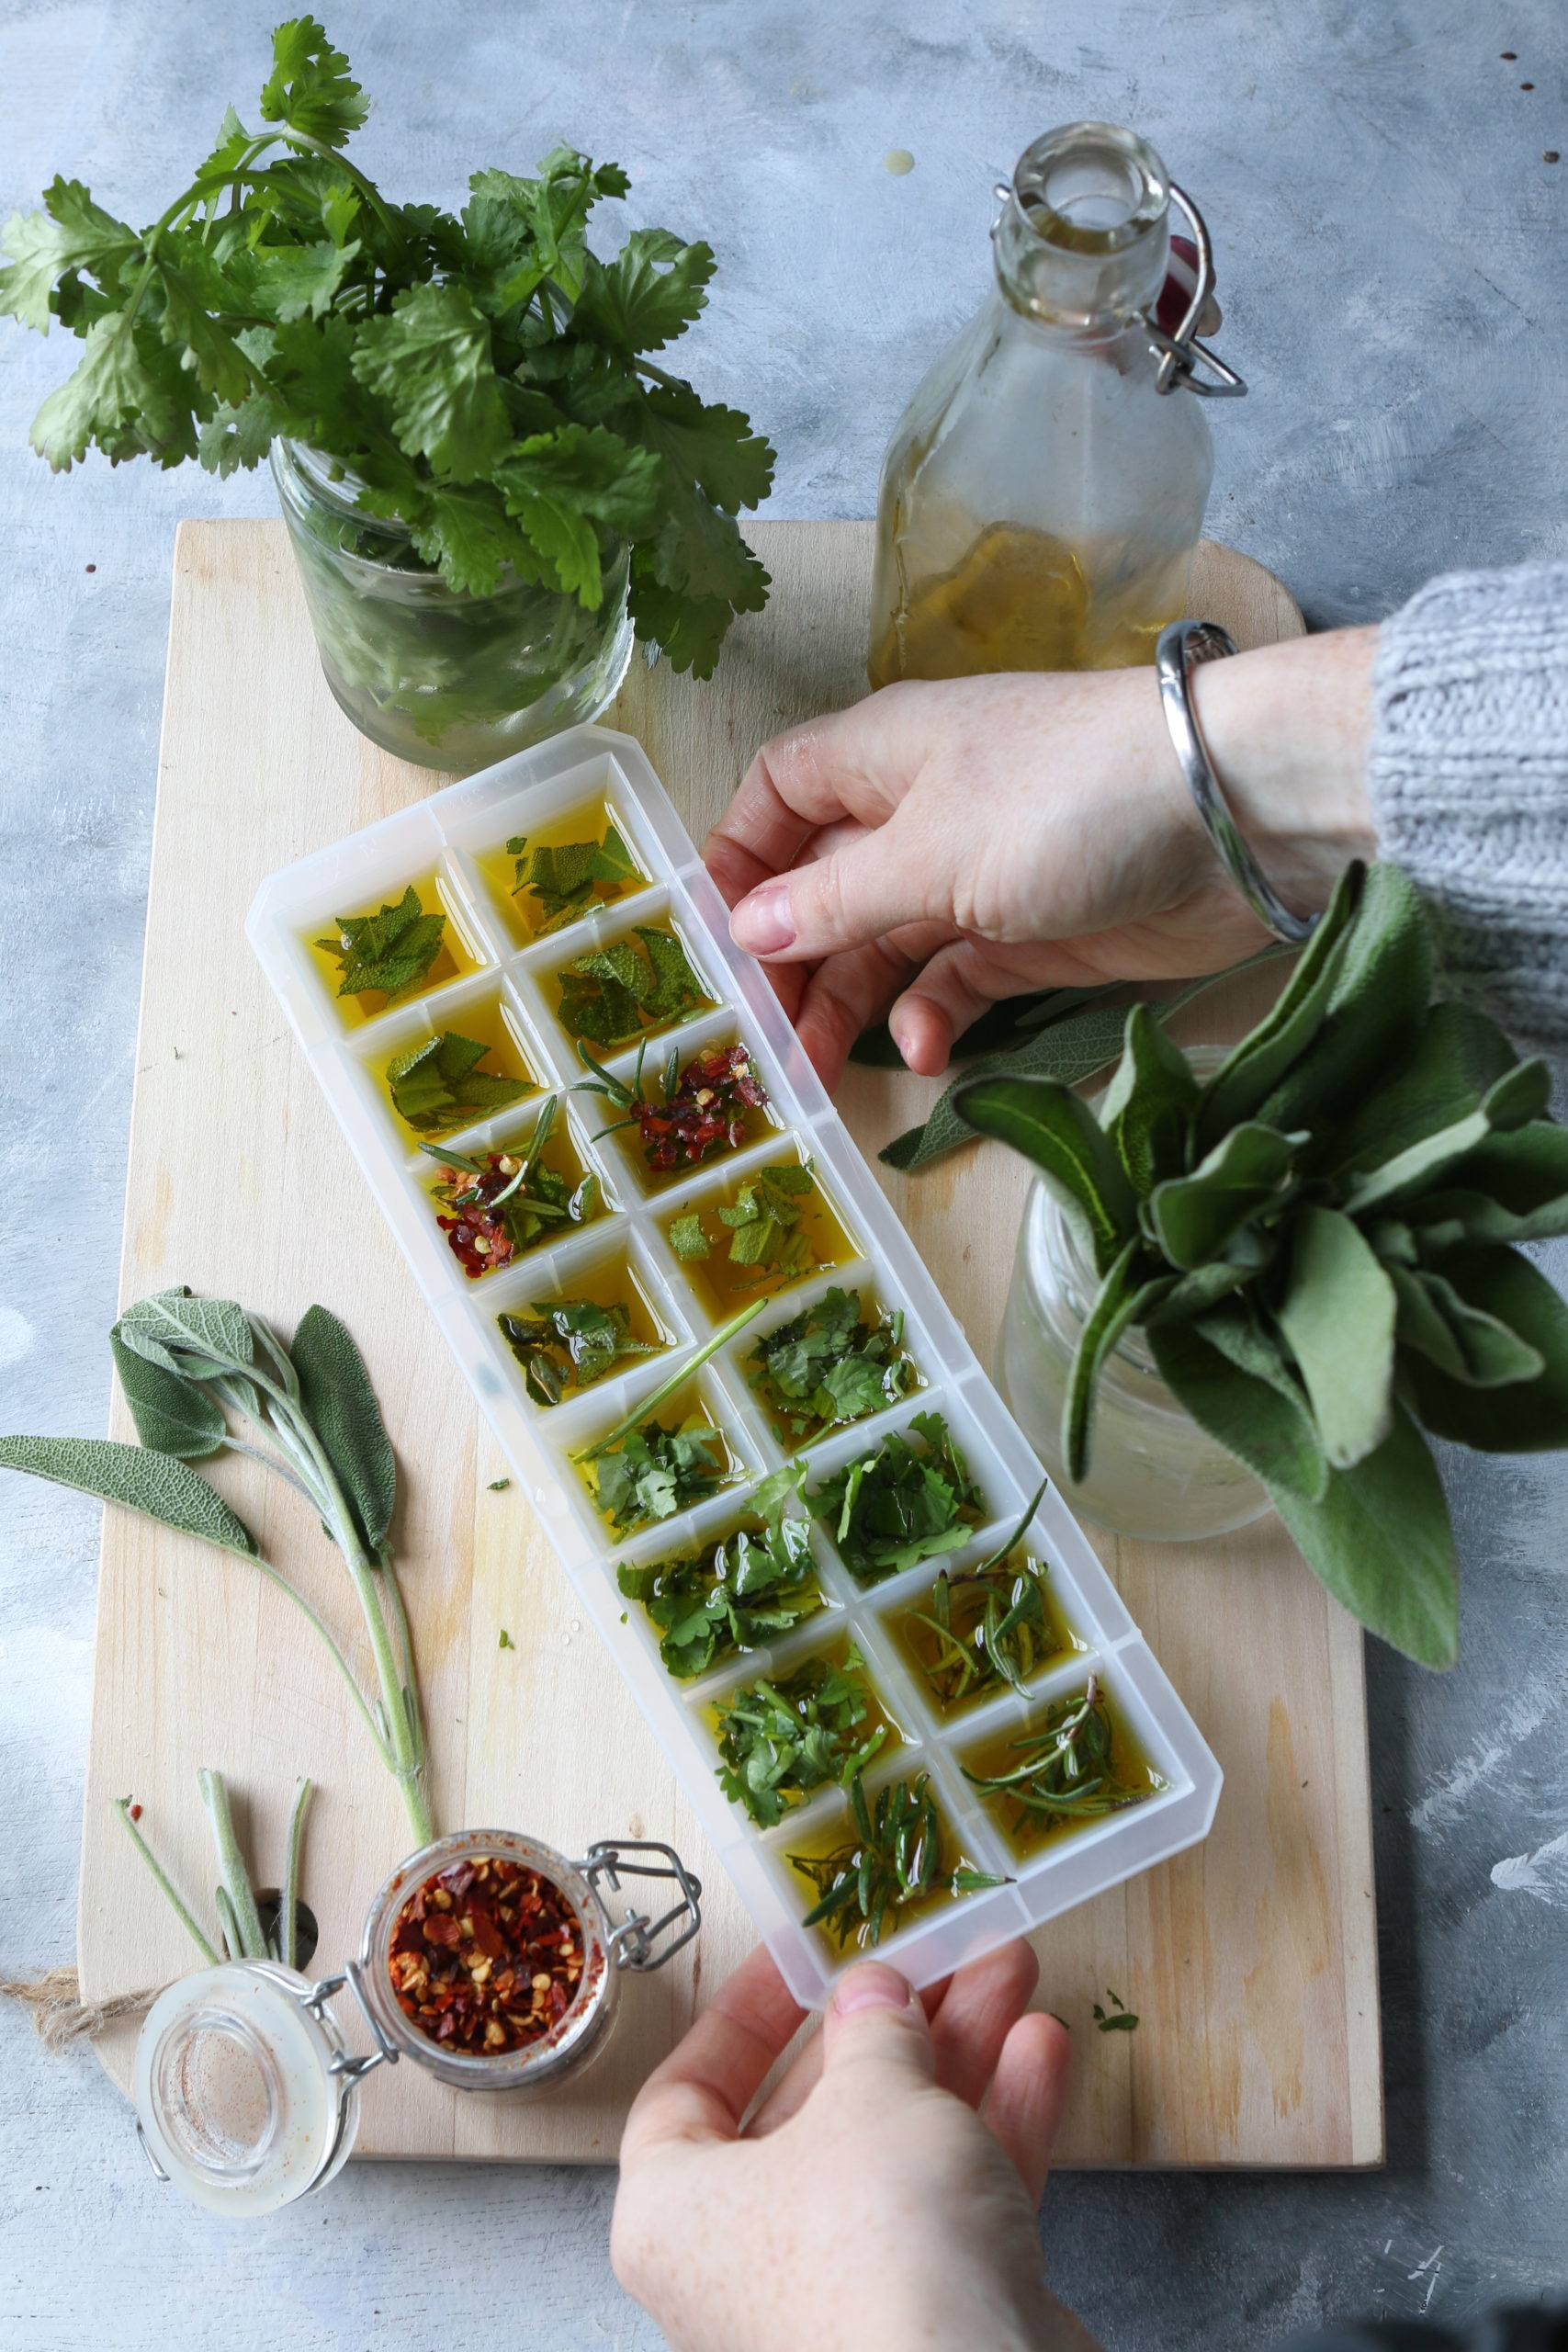 freezing herbs to preserve them